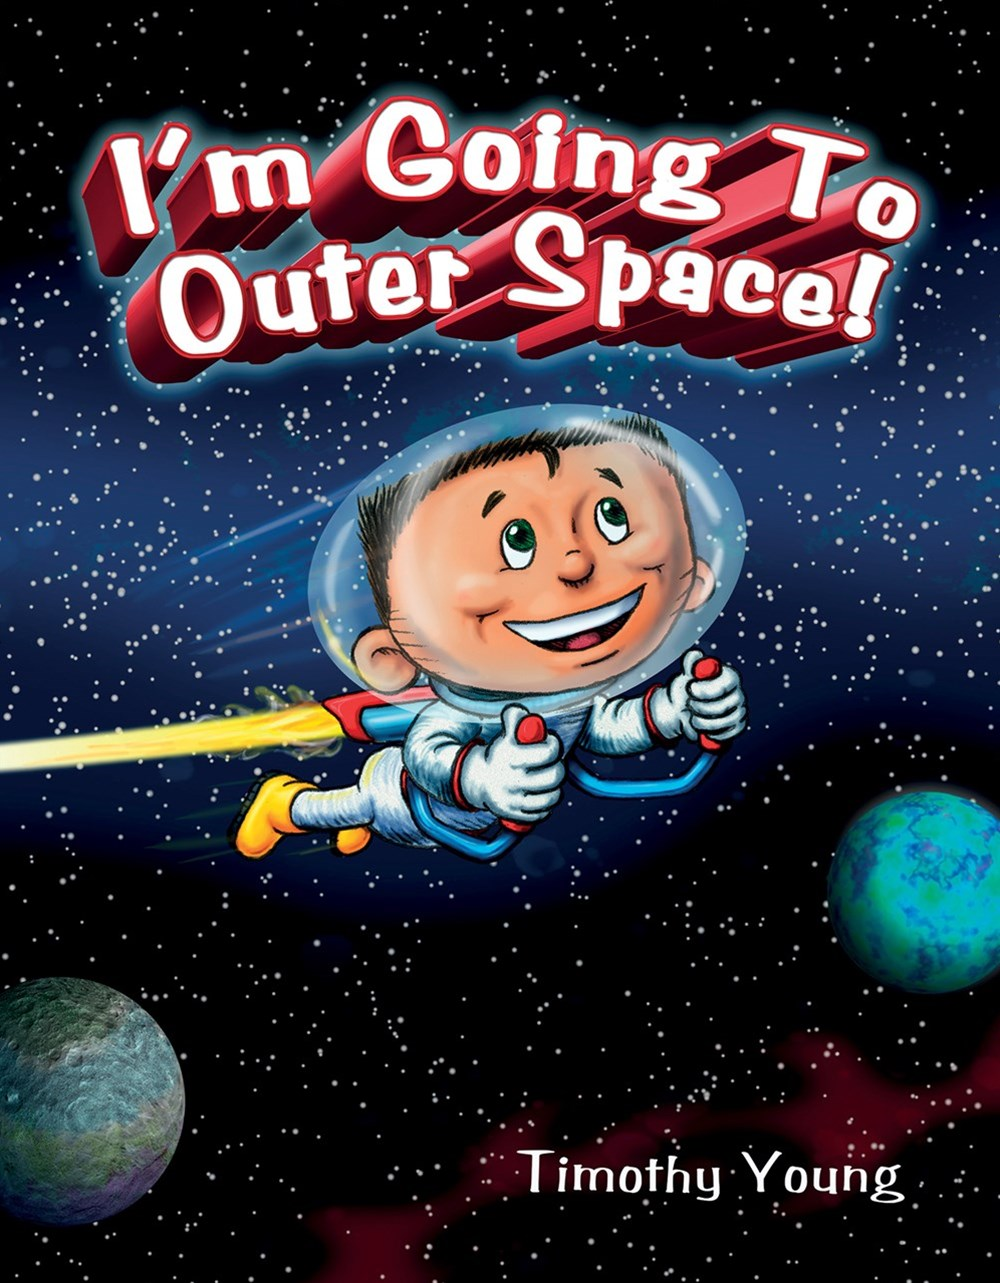 I'm Going to Outer Space